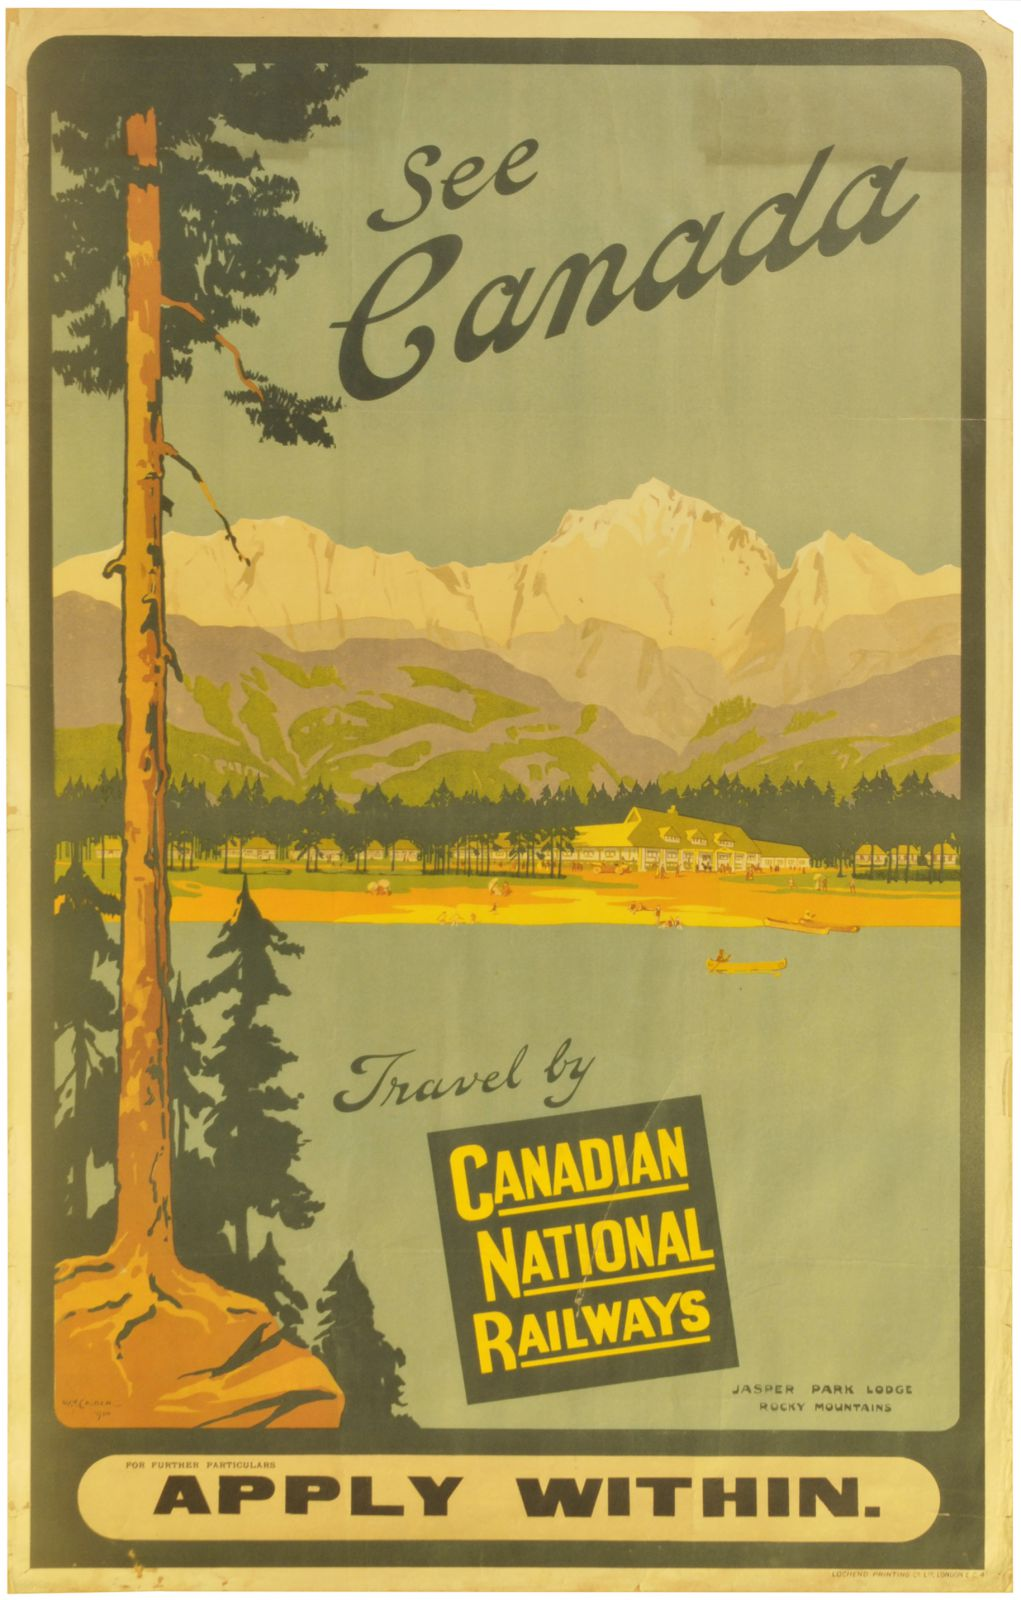 Lot 49 - Railway Posters, Canada, Calder, CNR: A Canadian National Railways double royal poster, JASPAR LODGE